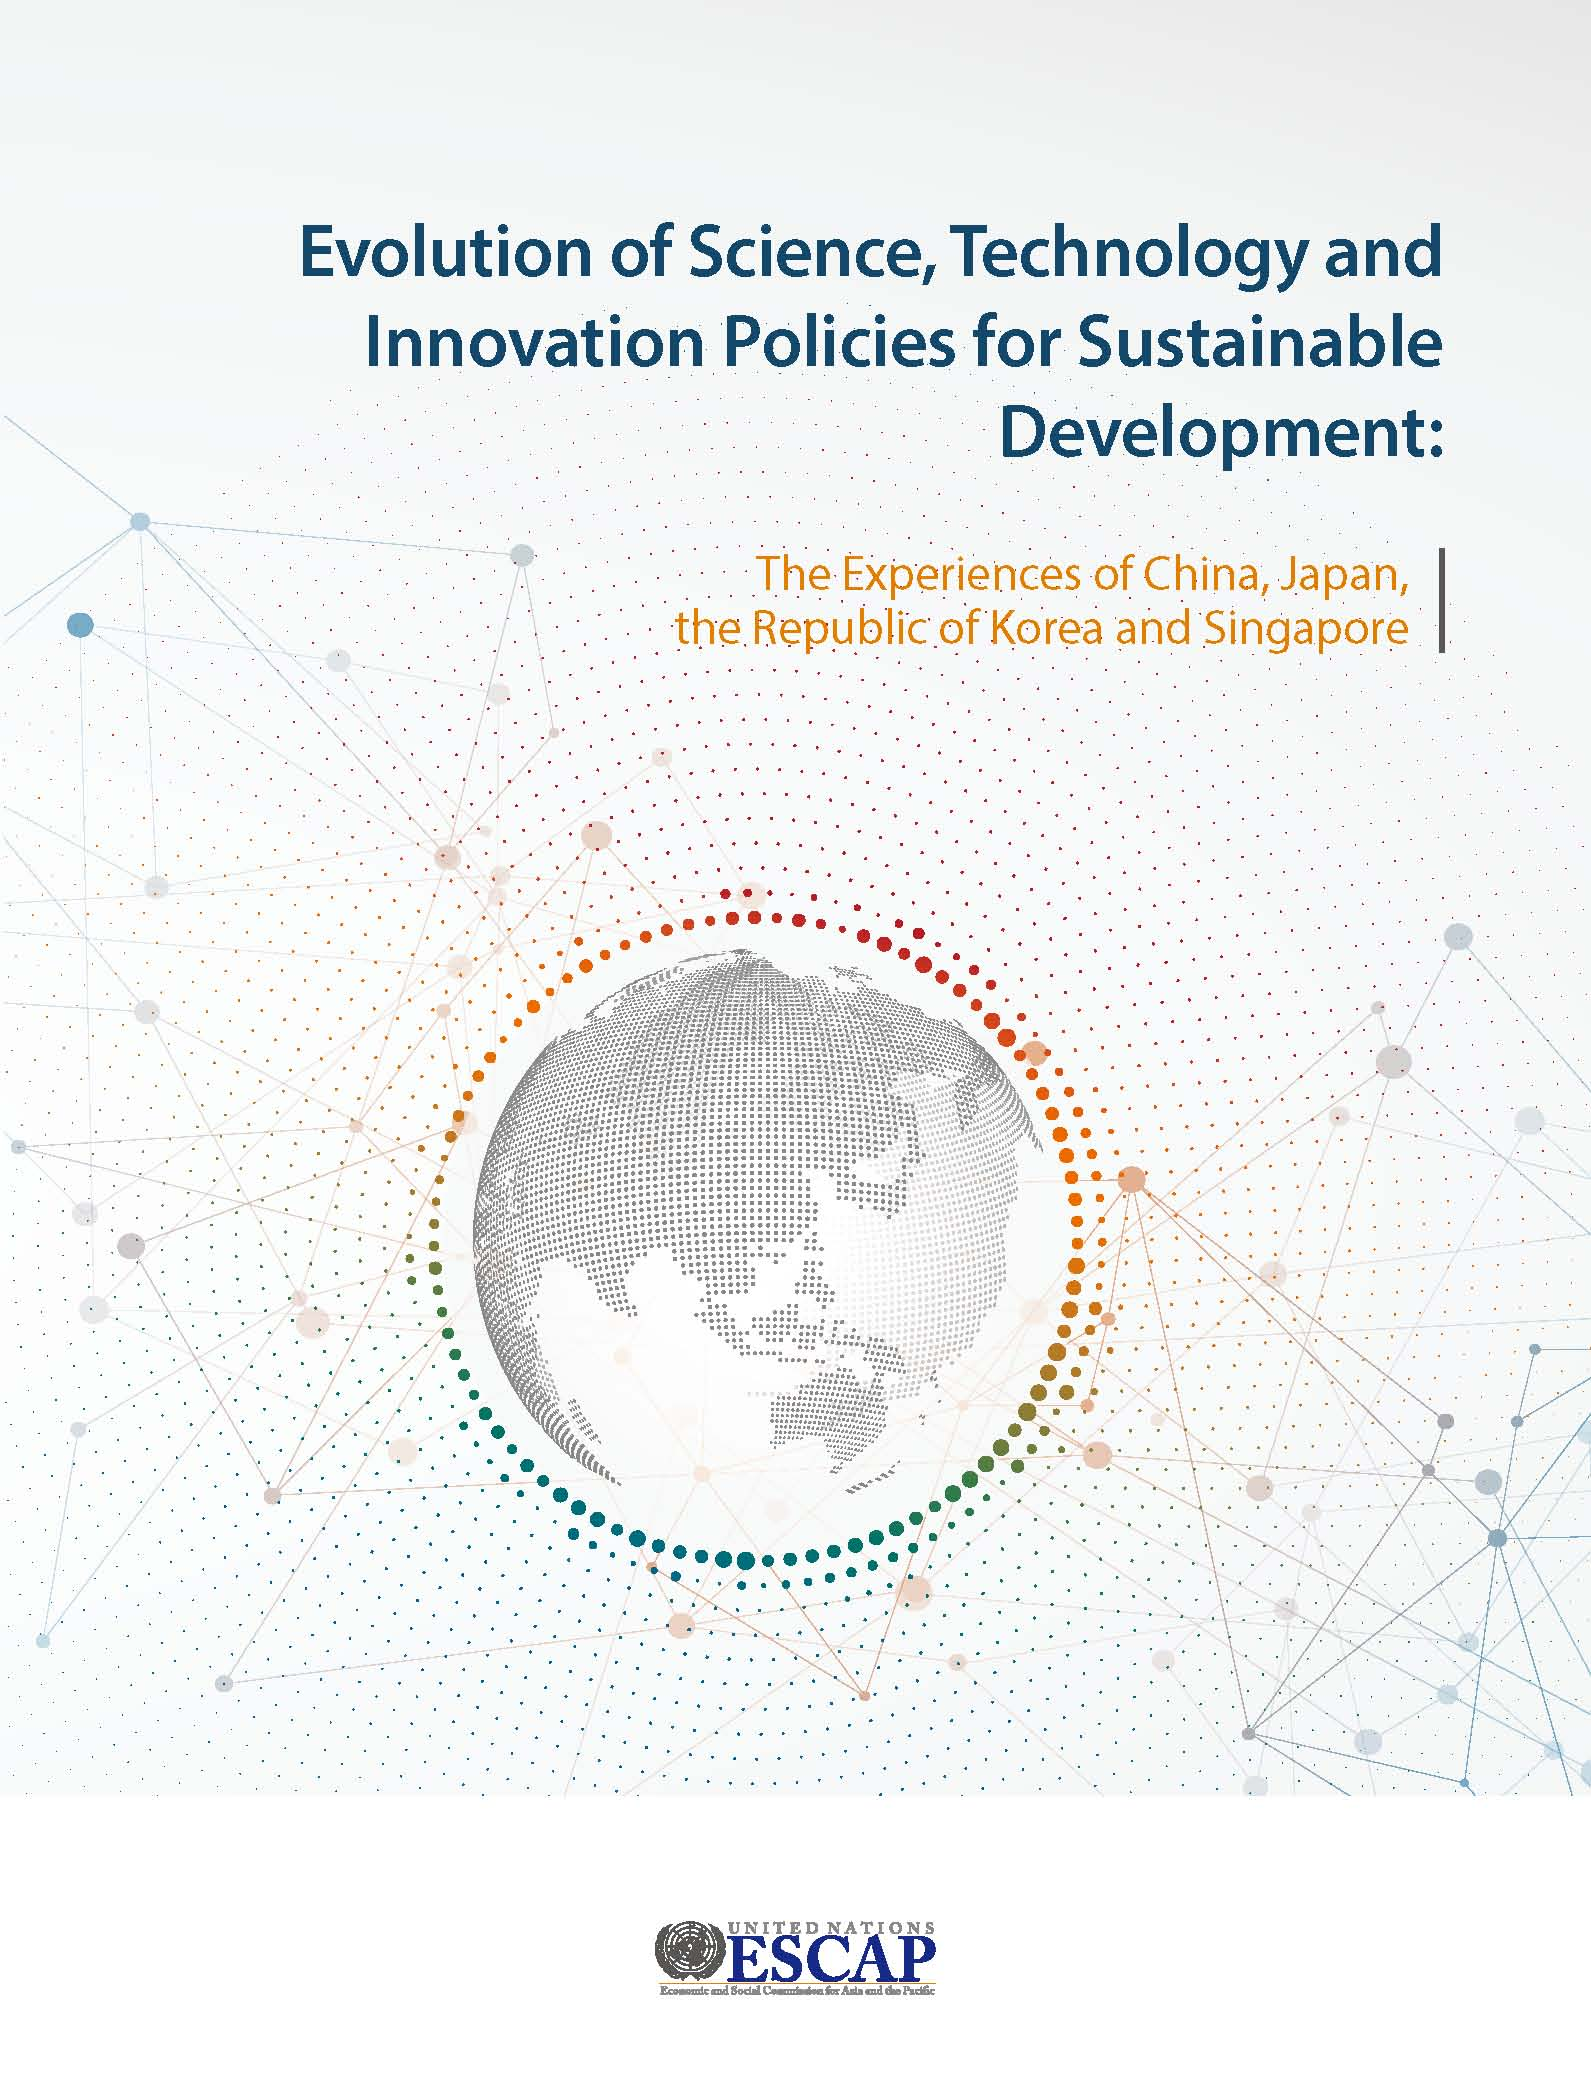 Publication: Evolution of Science, Technology and Innovation Policies for Sustainable Development: The Experiences of China, Japan, the Republic of Korea and Singapore